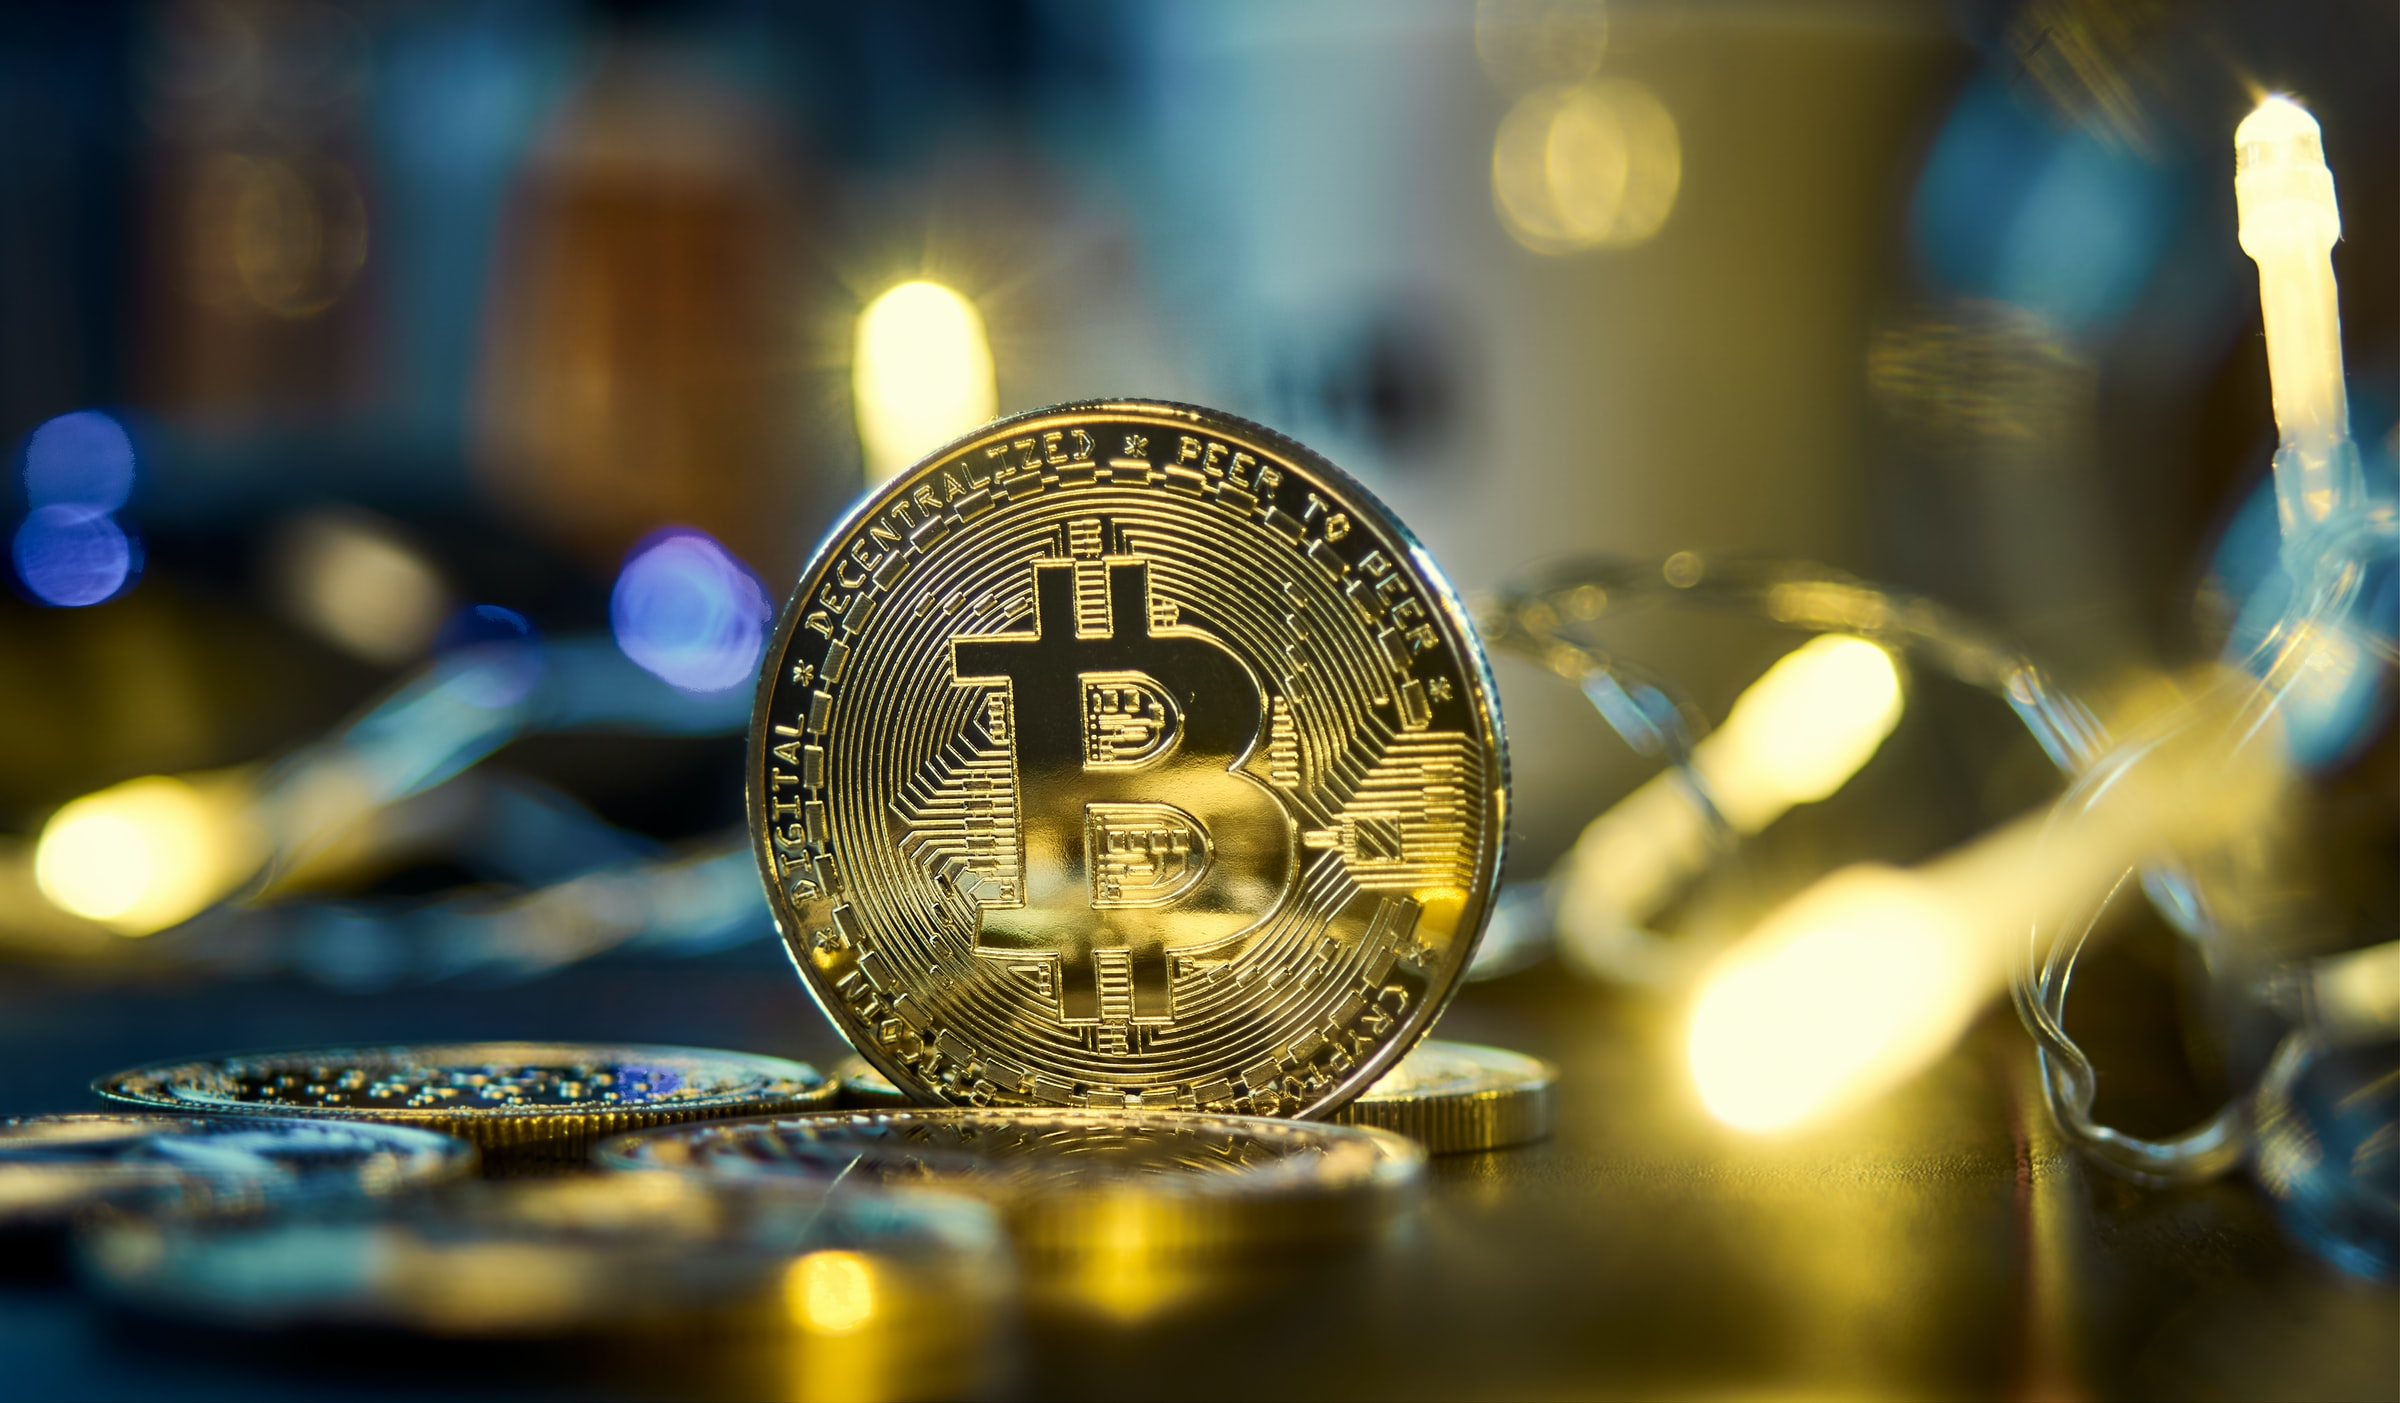 Bitcoin Core 22.0 with Taproot support was released